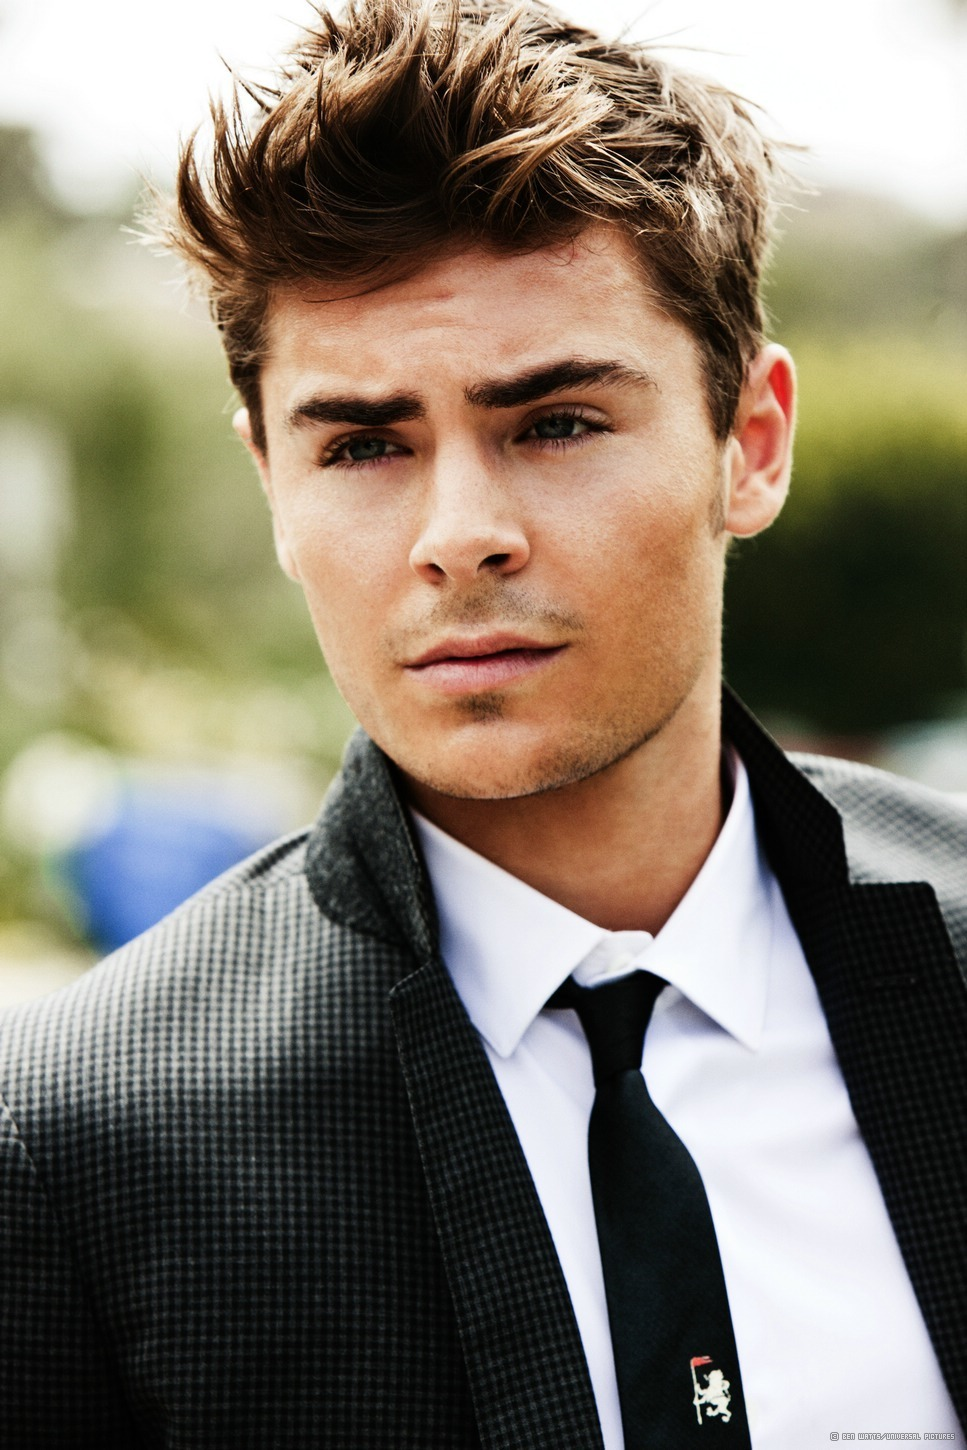 Zac Efron Too Many Hot Guys